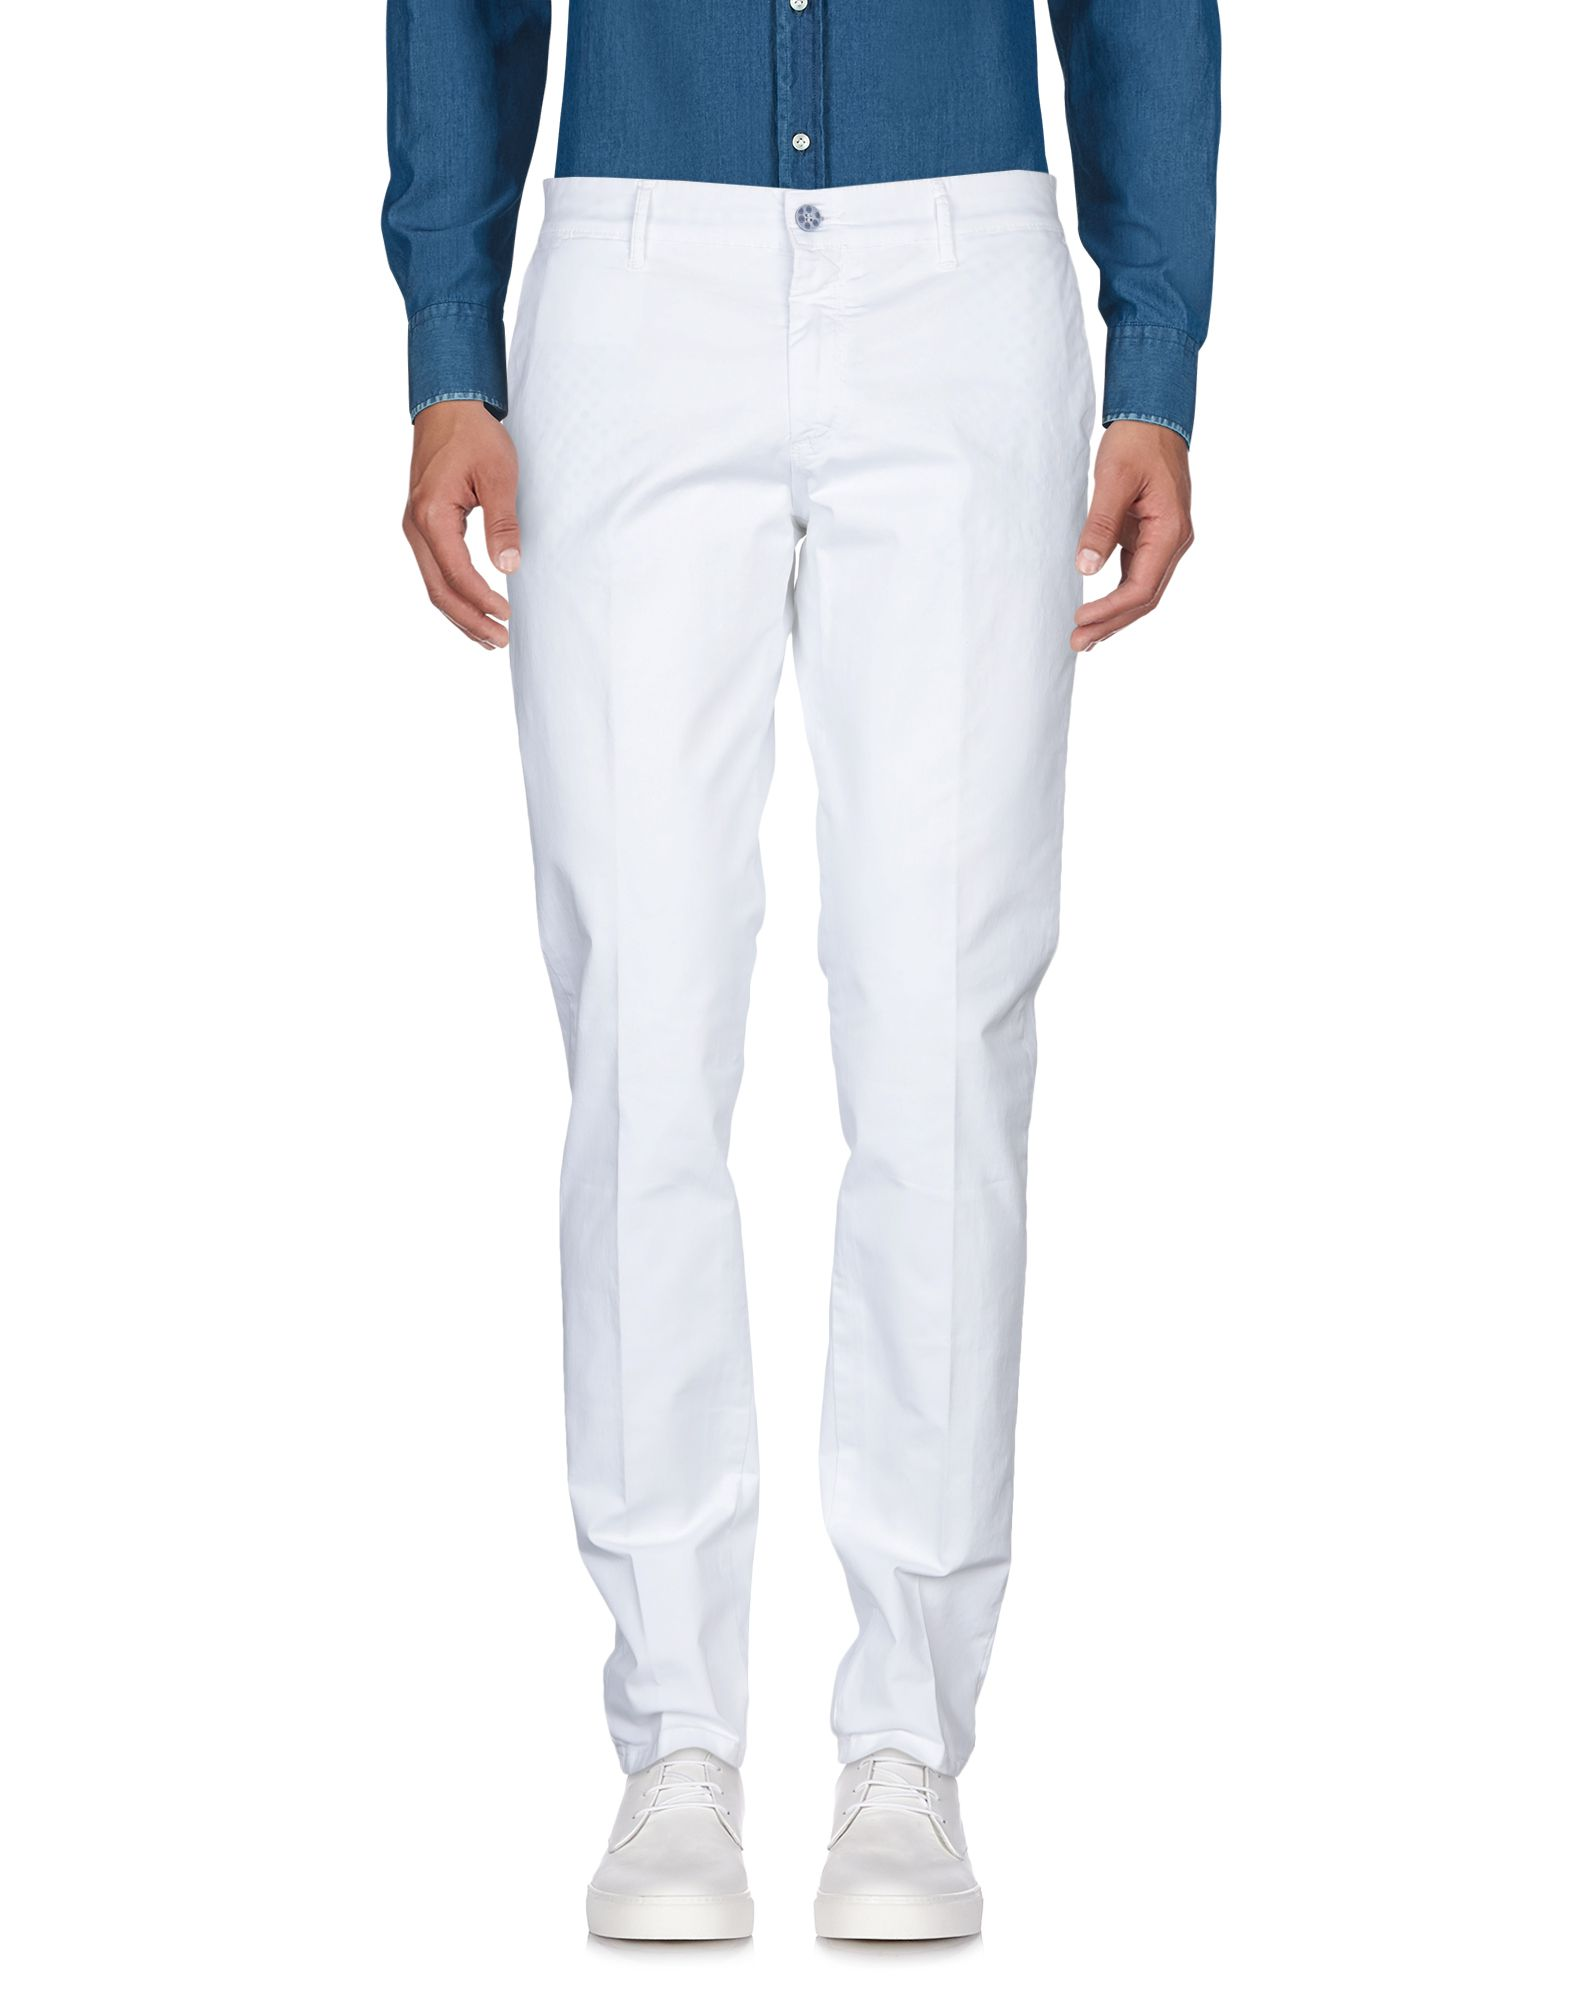 ALESSANDRO GILLES | ALESSANDRO GILLES Casual pants | Goxip